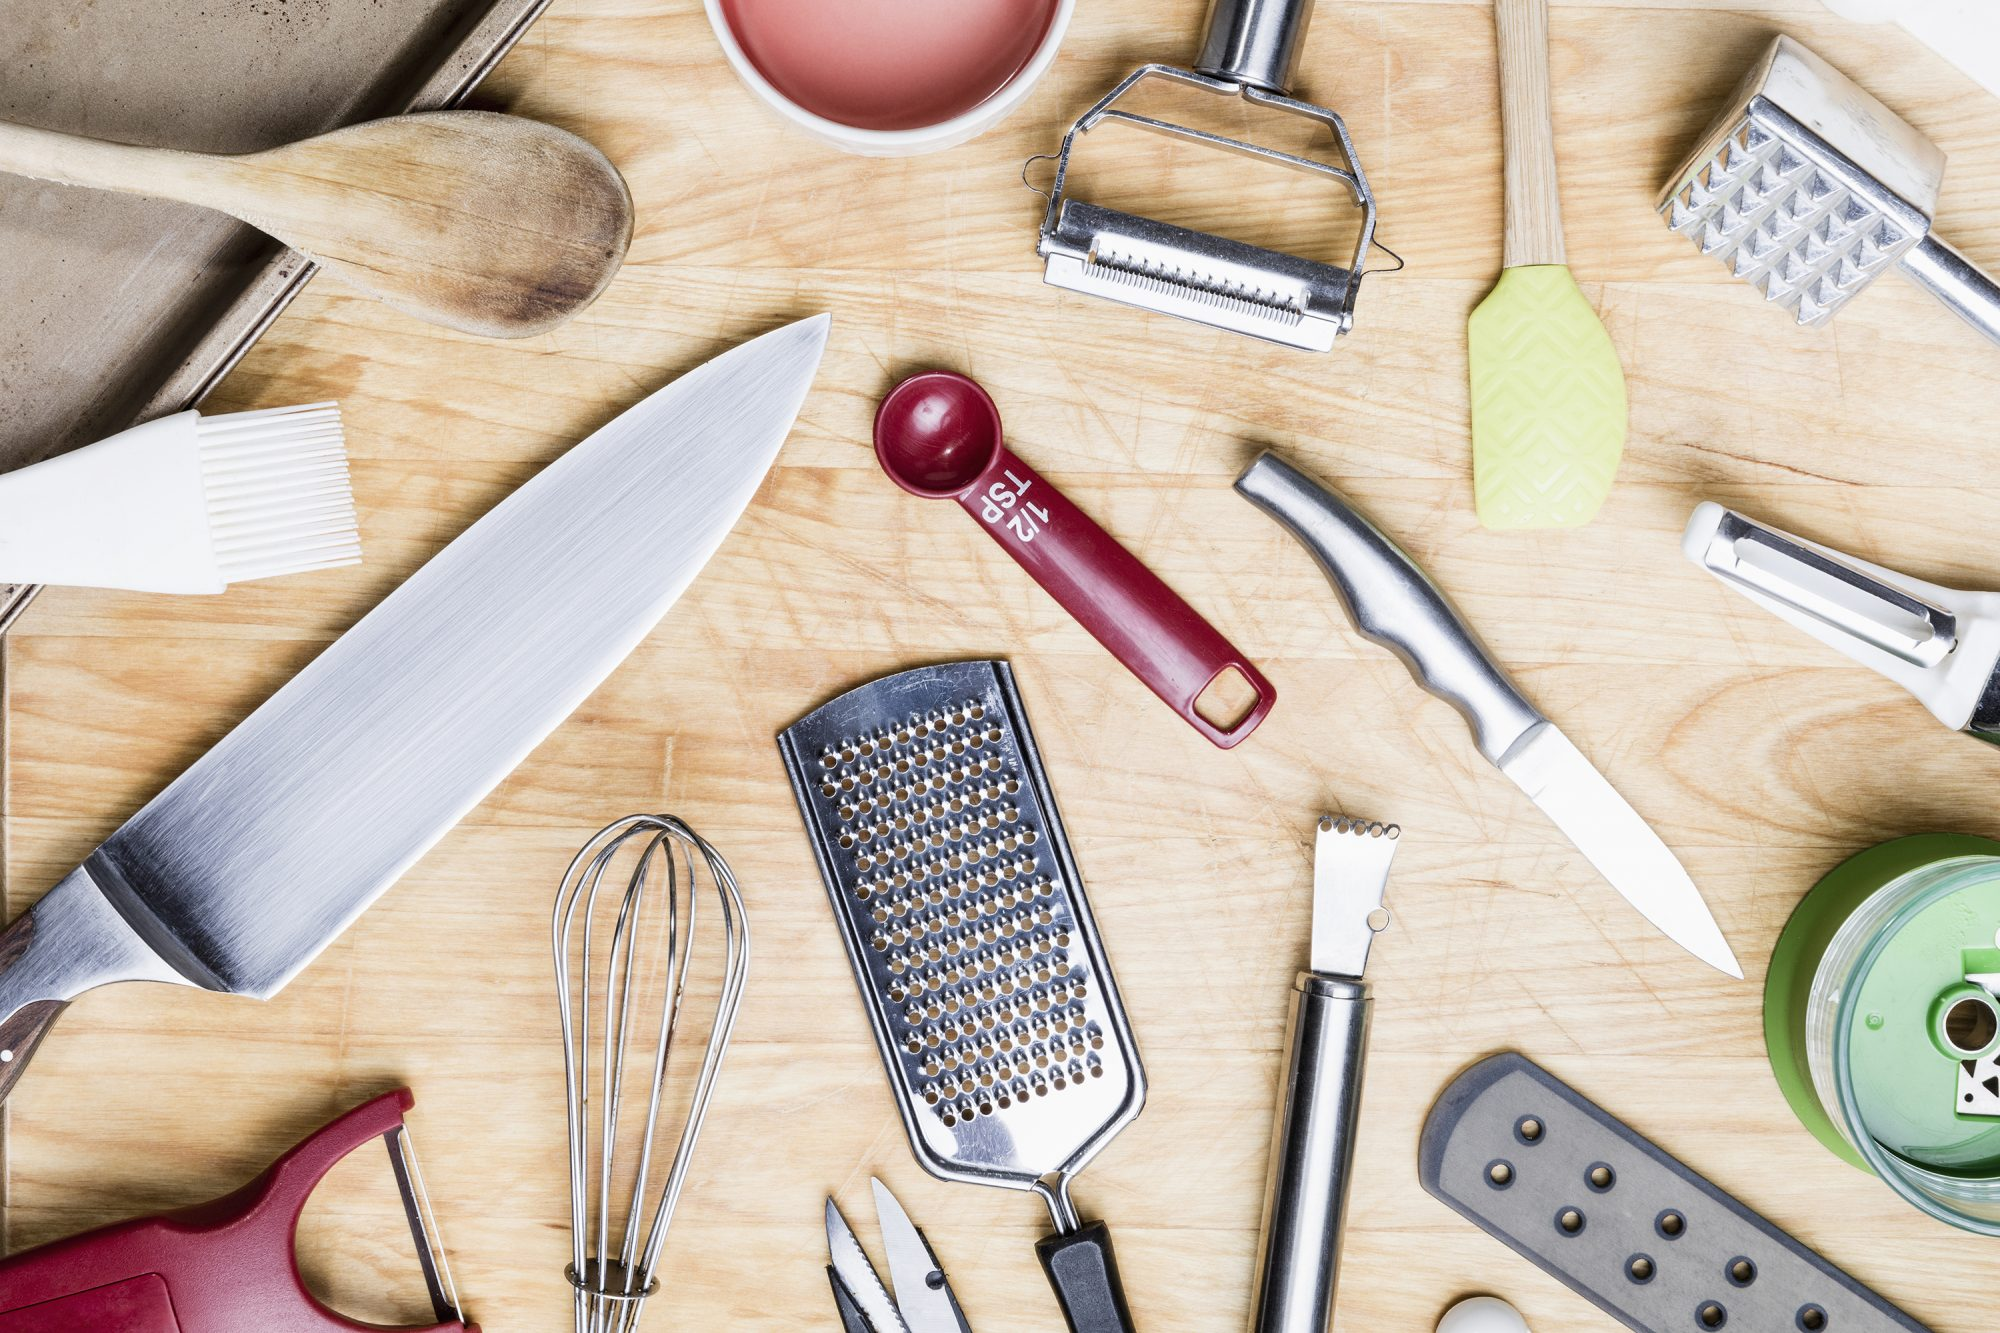 View from above kitchen utensils on wooden surface - knolling